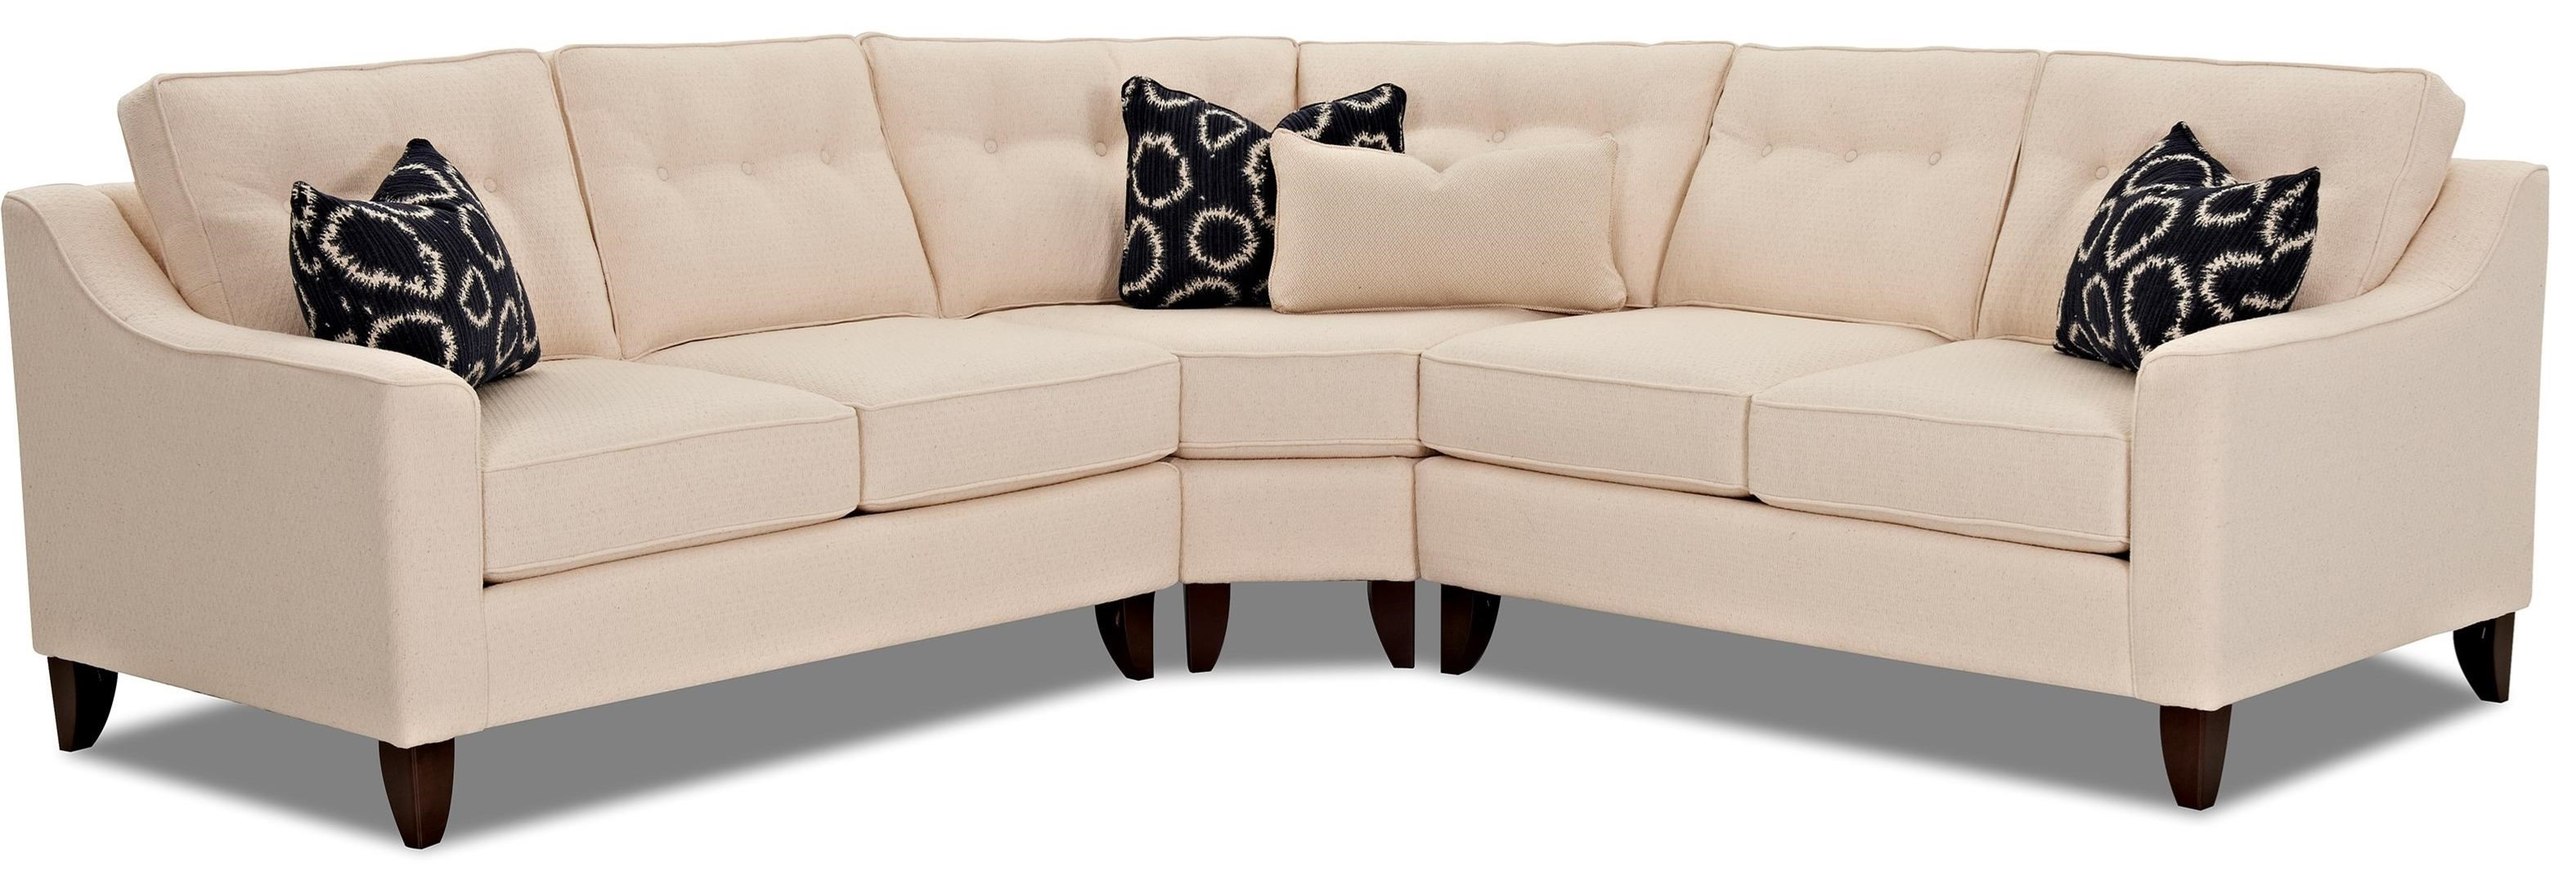 Klaussner Audrina Contemporary 3 Piece Sectional With Wedge  ~ How To Measure A Sectional Sofa With Wedge